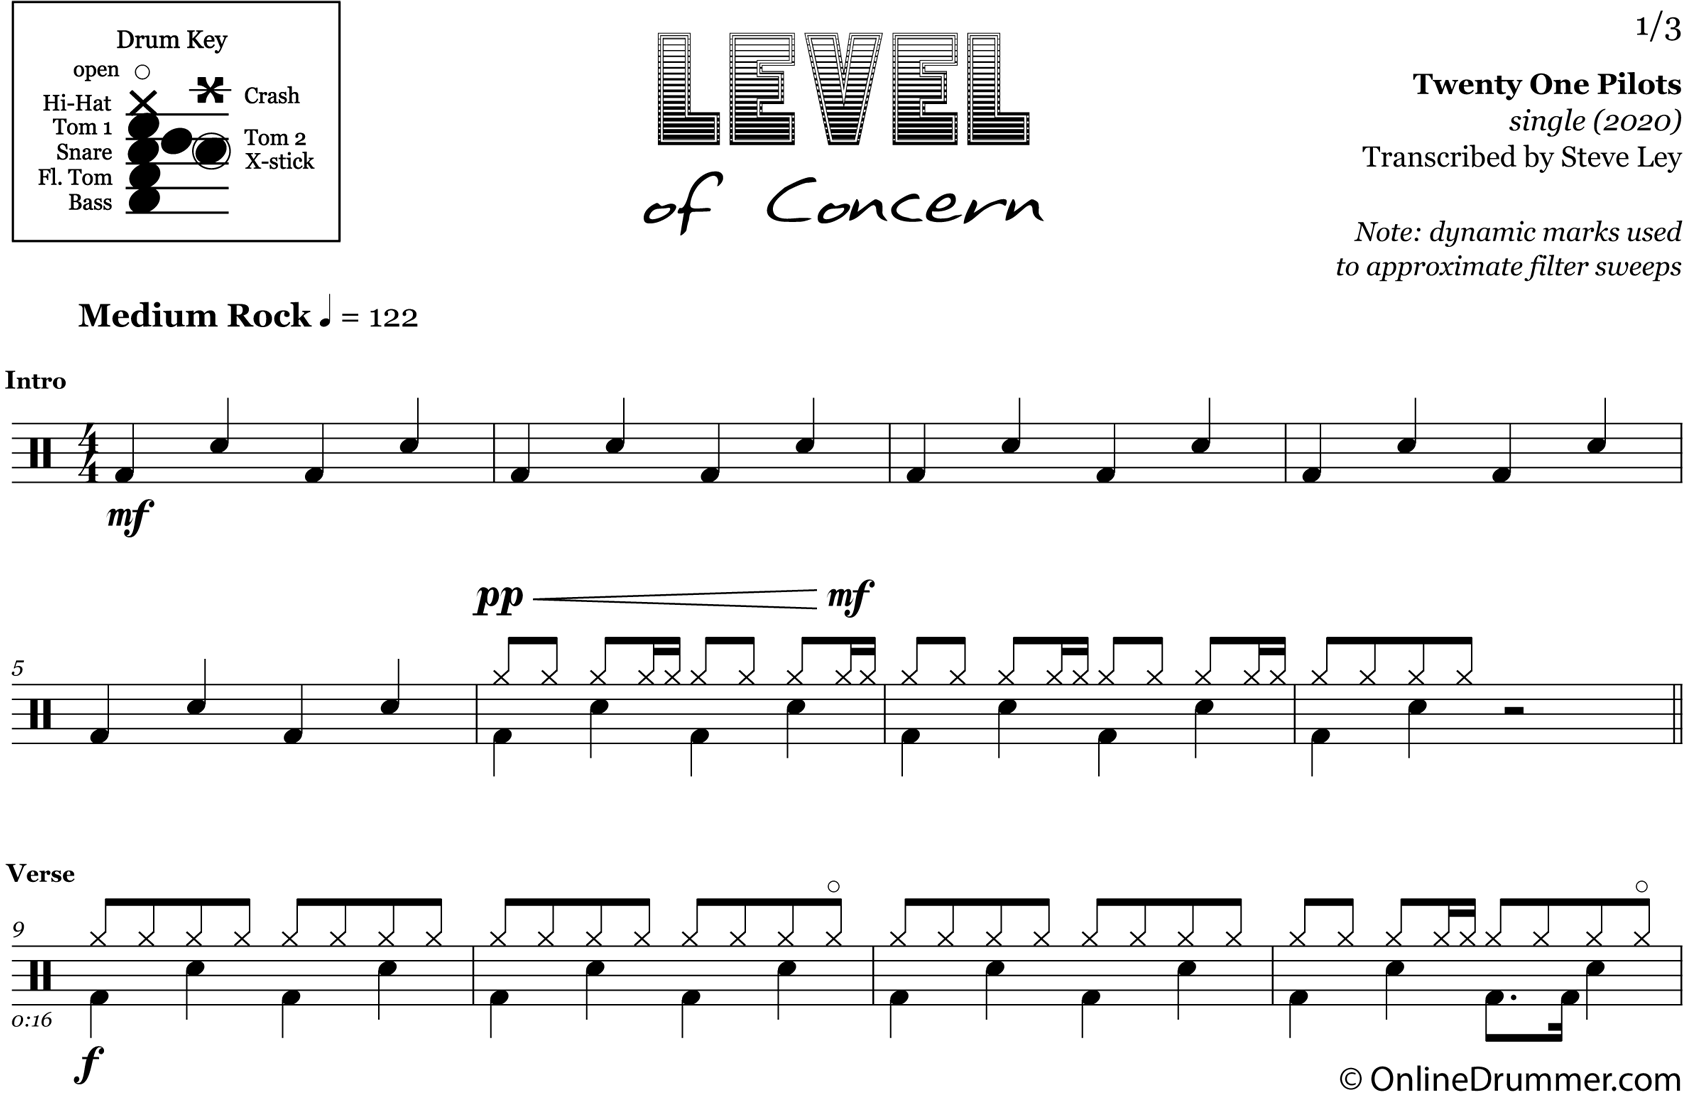 Level of Concern - Twenty One Pilots - Drum Sheet Music